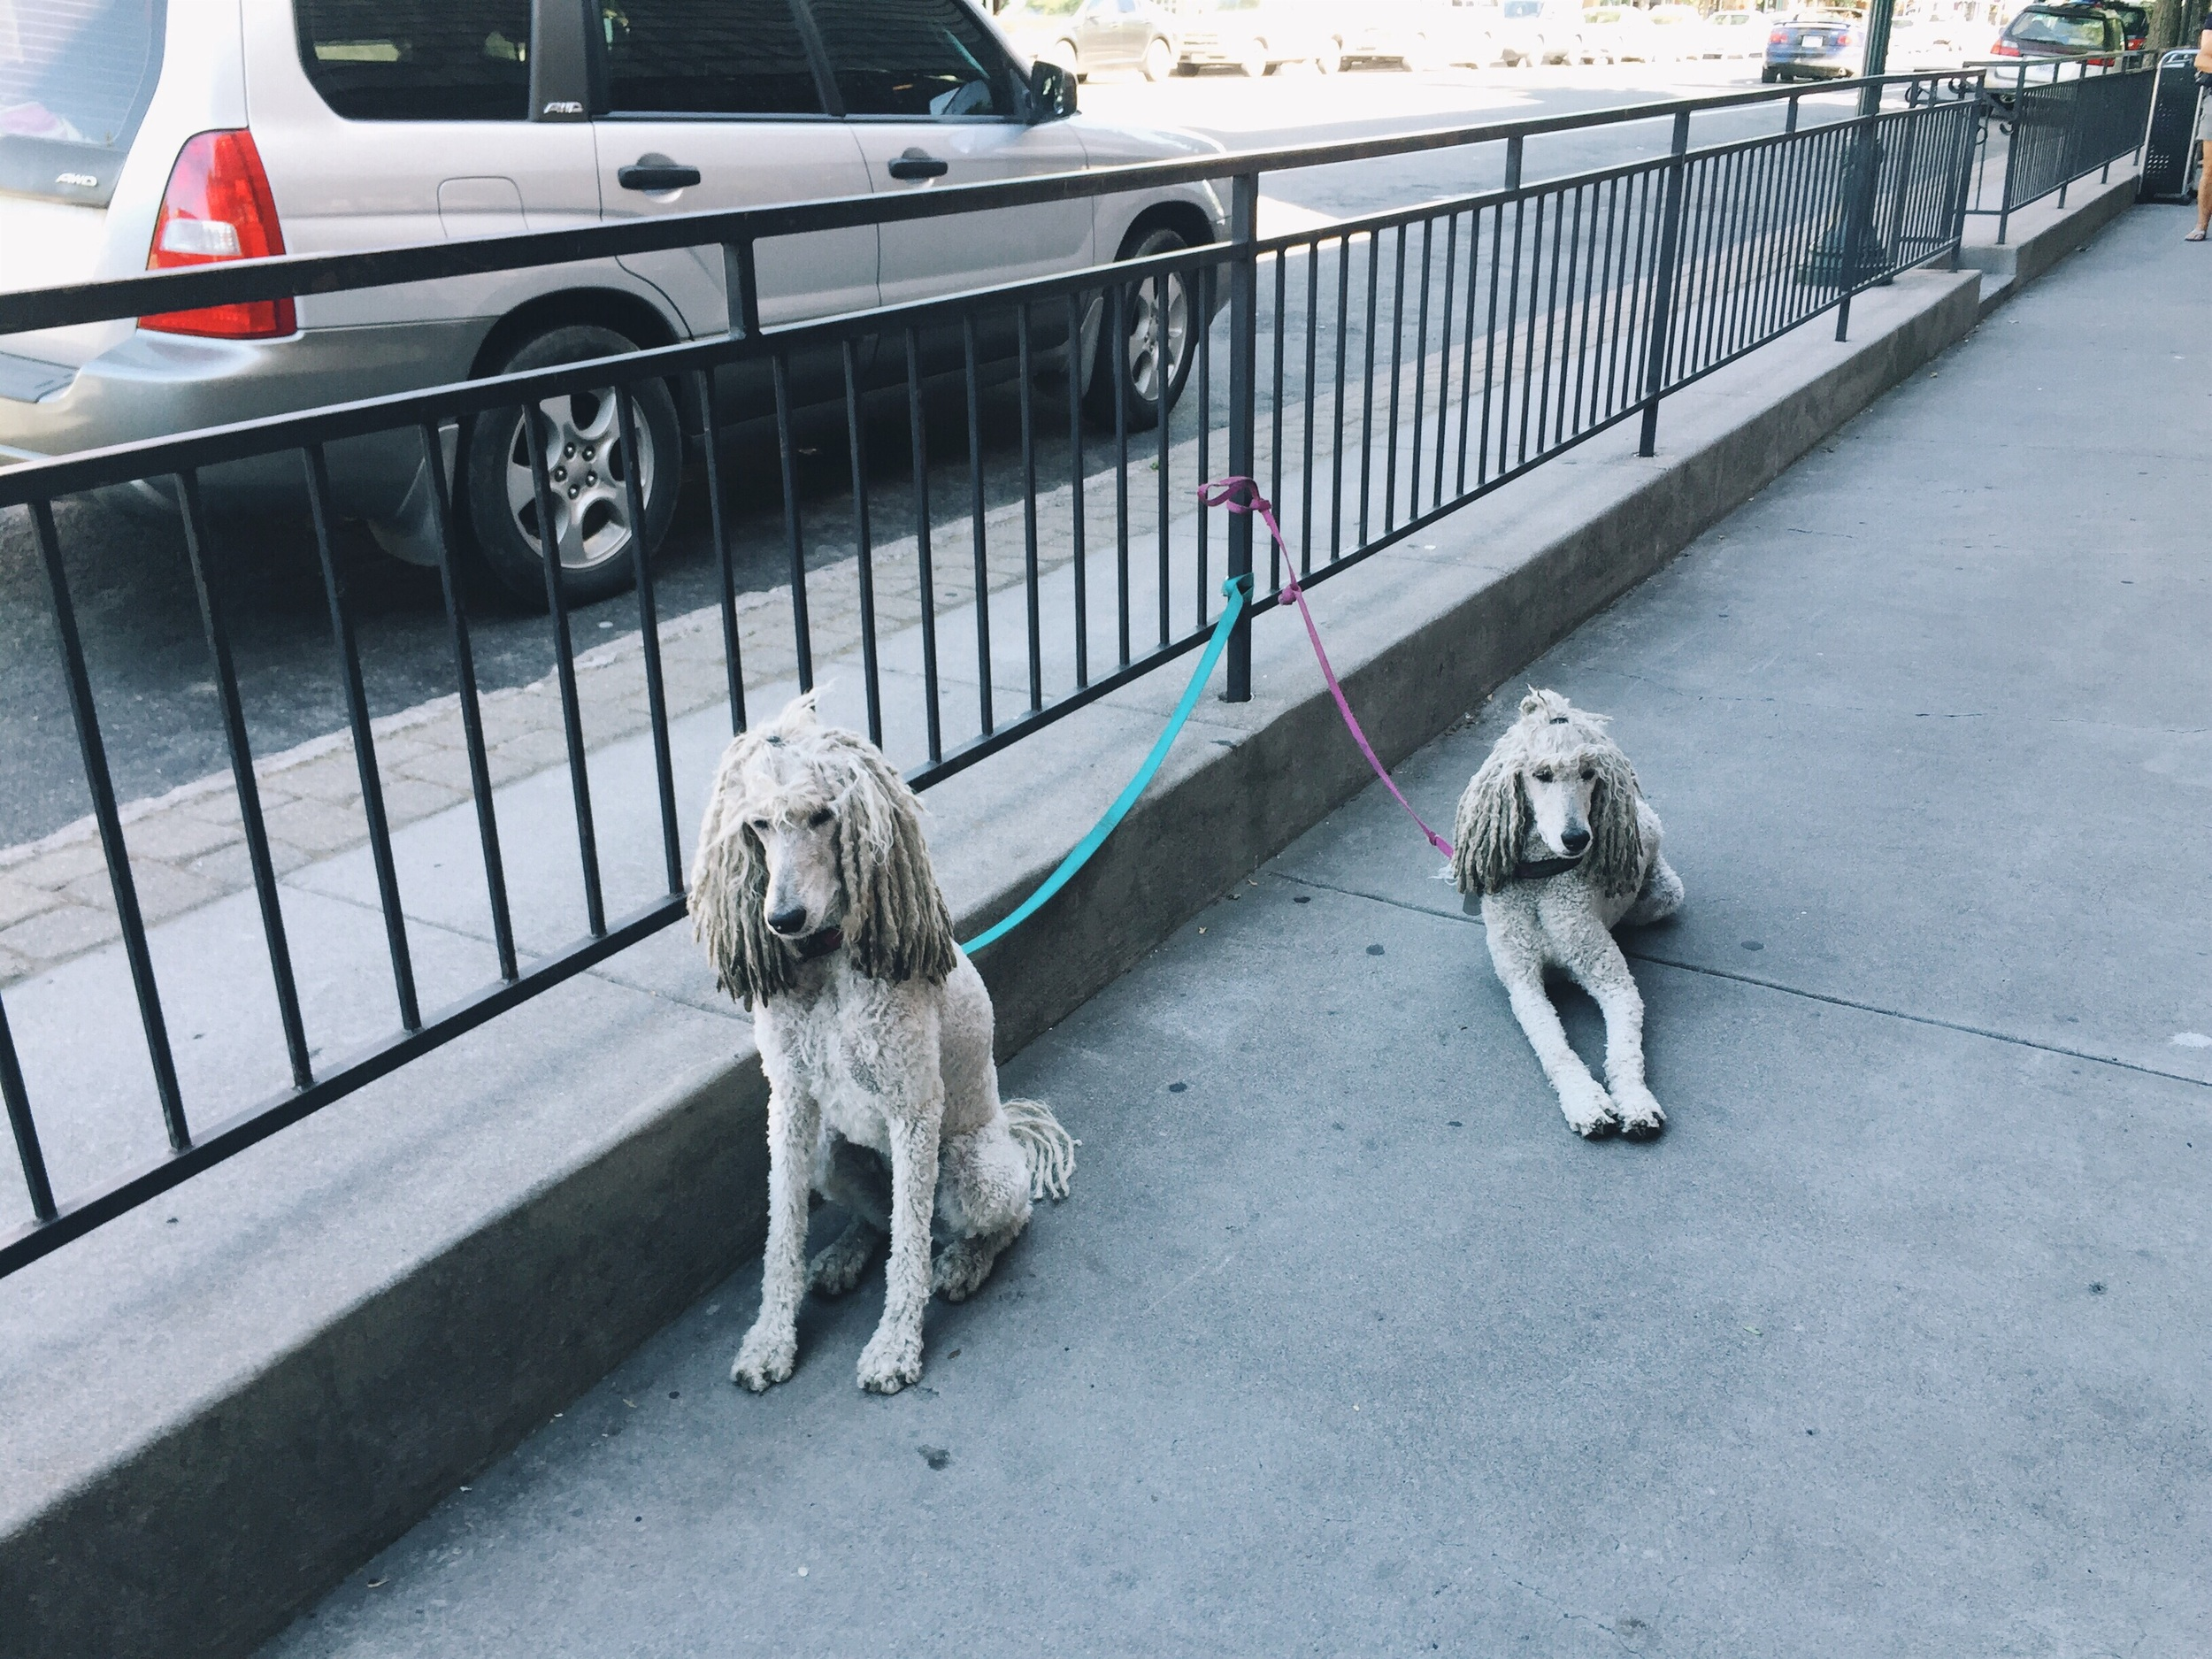 Some cute dogs outside the coffee shop.